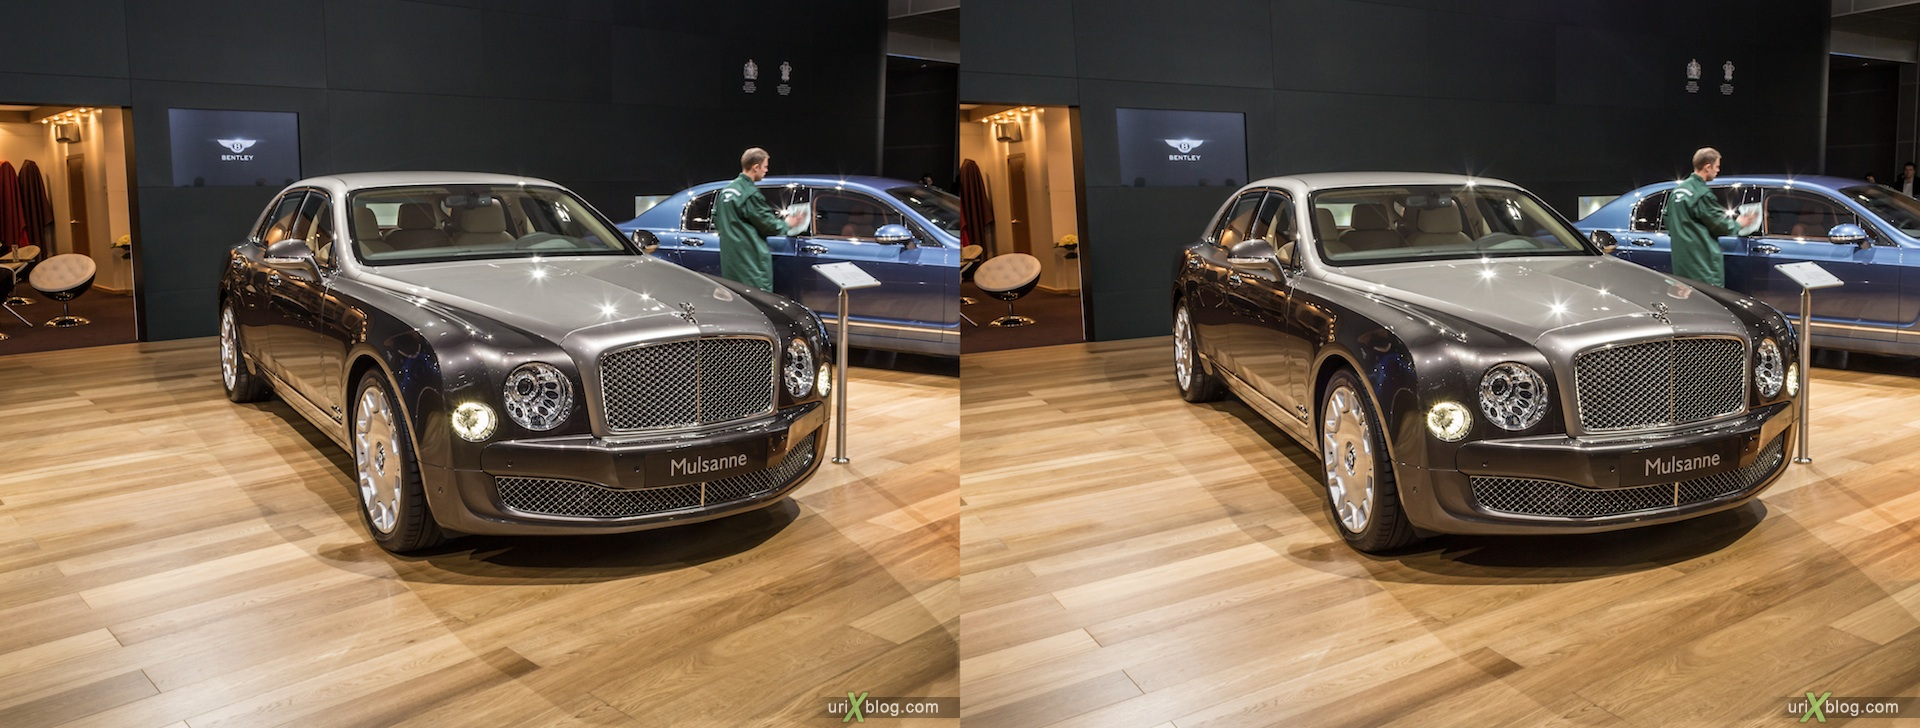 2012, Bentley Mulsanne, Moscow International Automobile Salon, auto show, 3D, stereo pair, cross-eyed, crossview